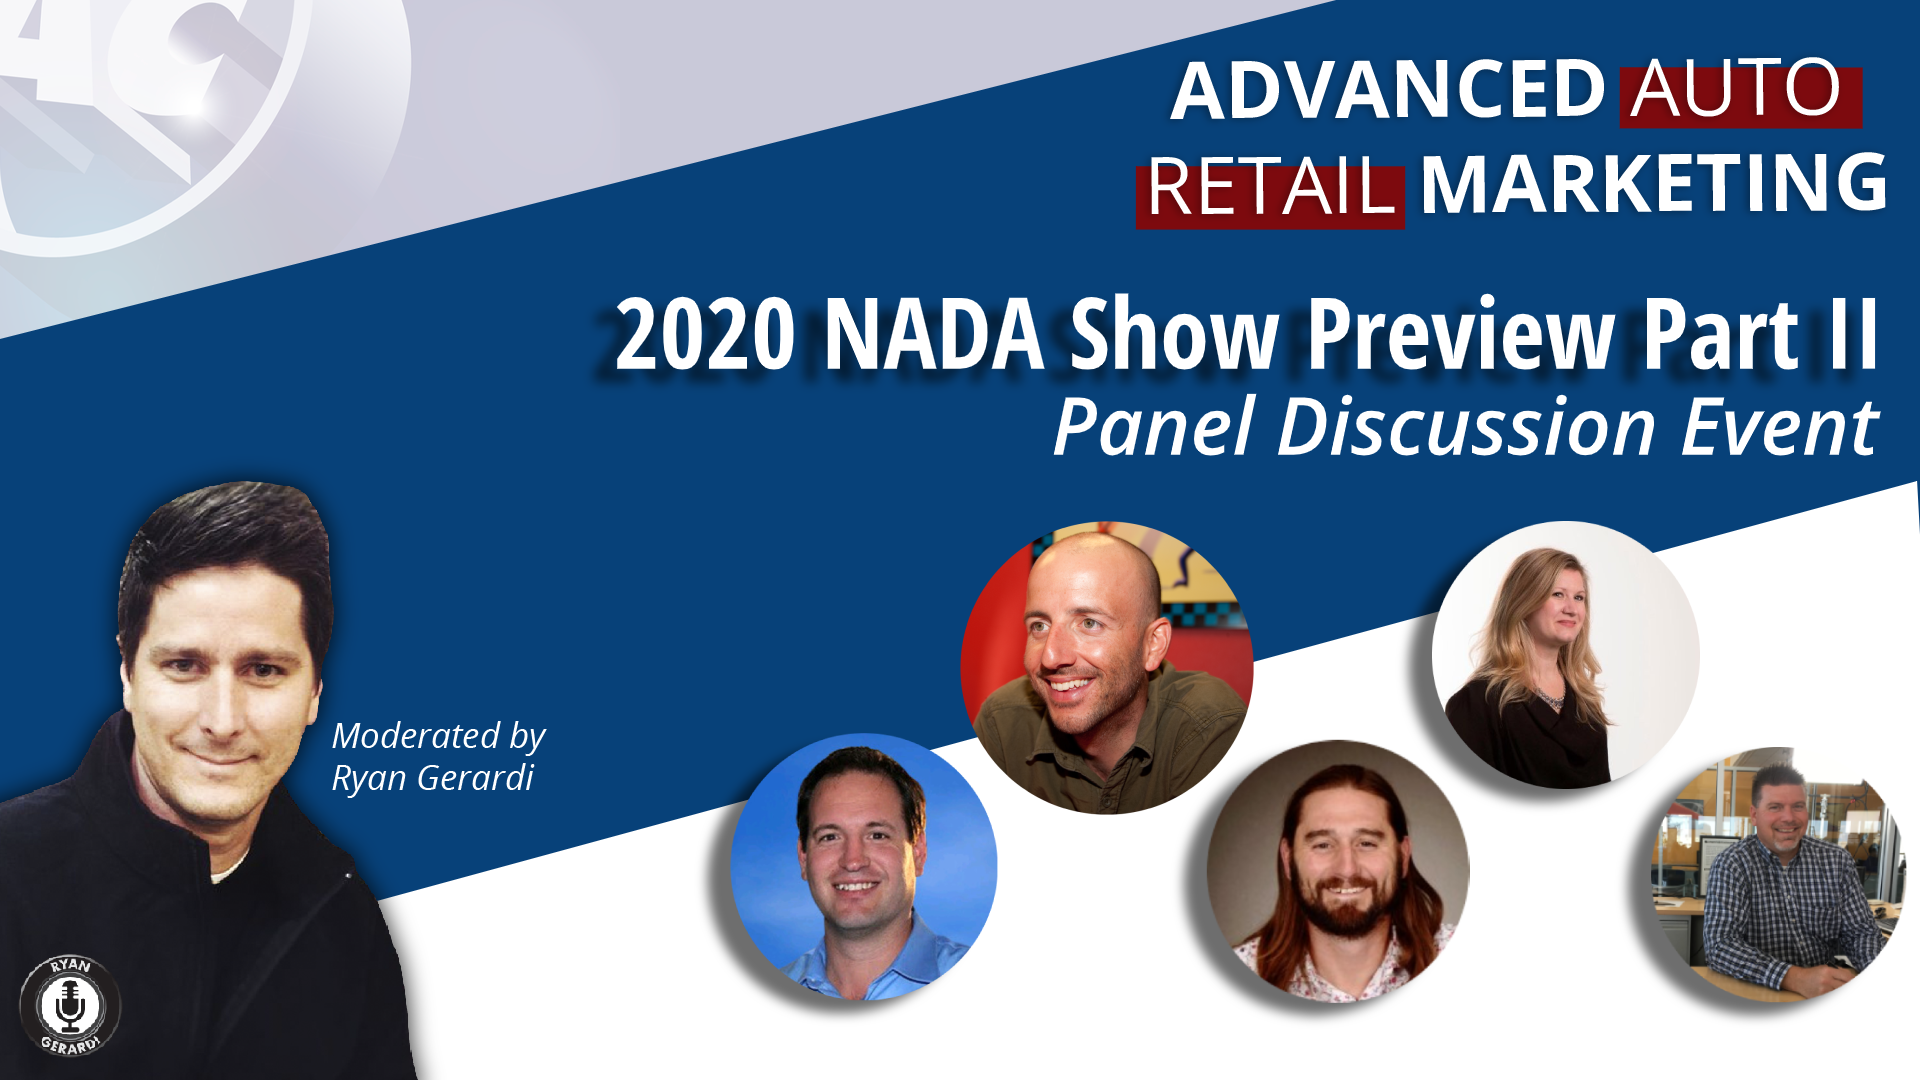 🎙 Final Preview of 2020 NADA Show with COVID-19 Update